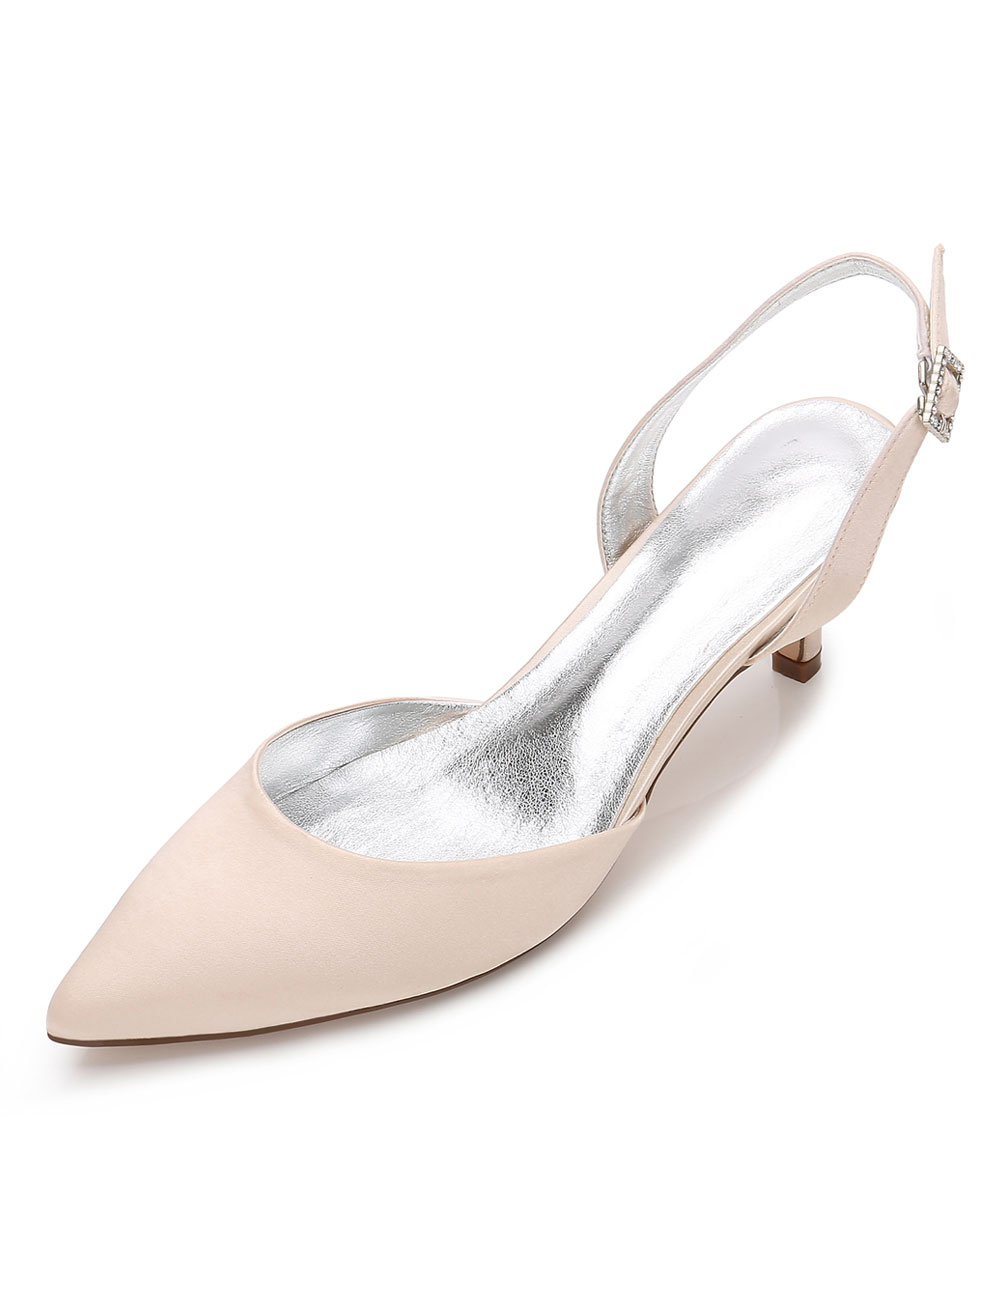 Champagne Wedding Shoes Pointed Toe Kitten Heel Bridal Shoes